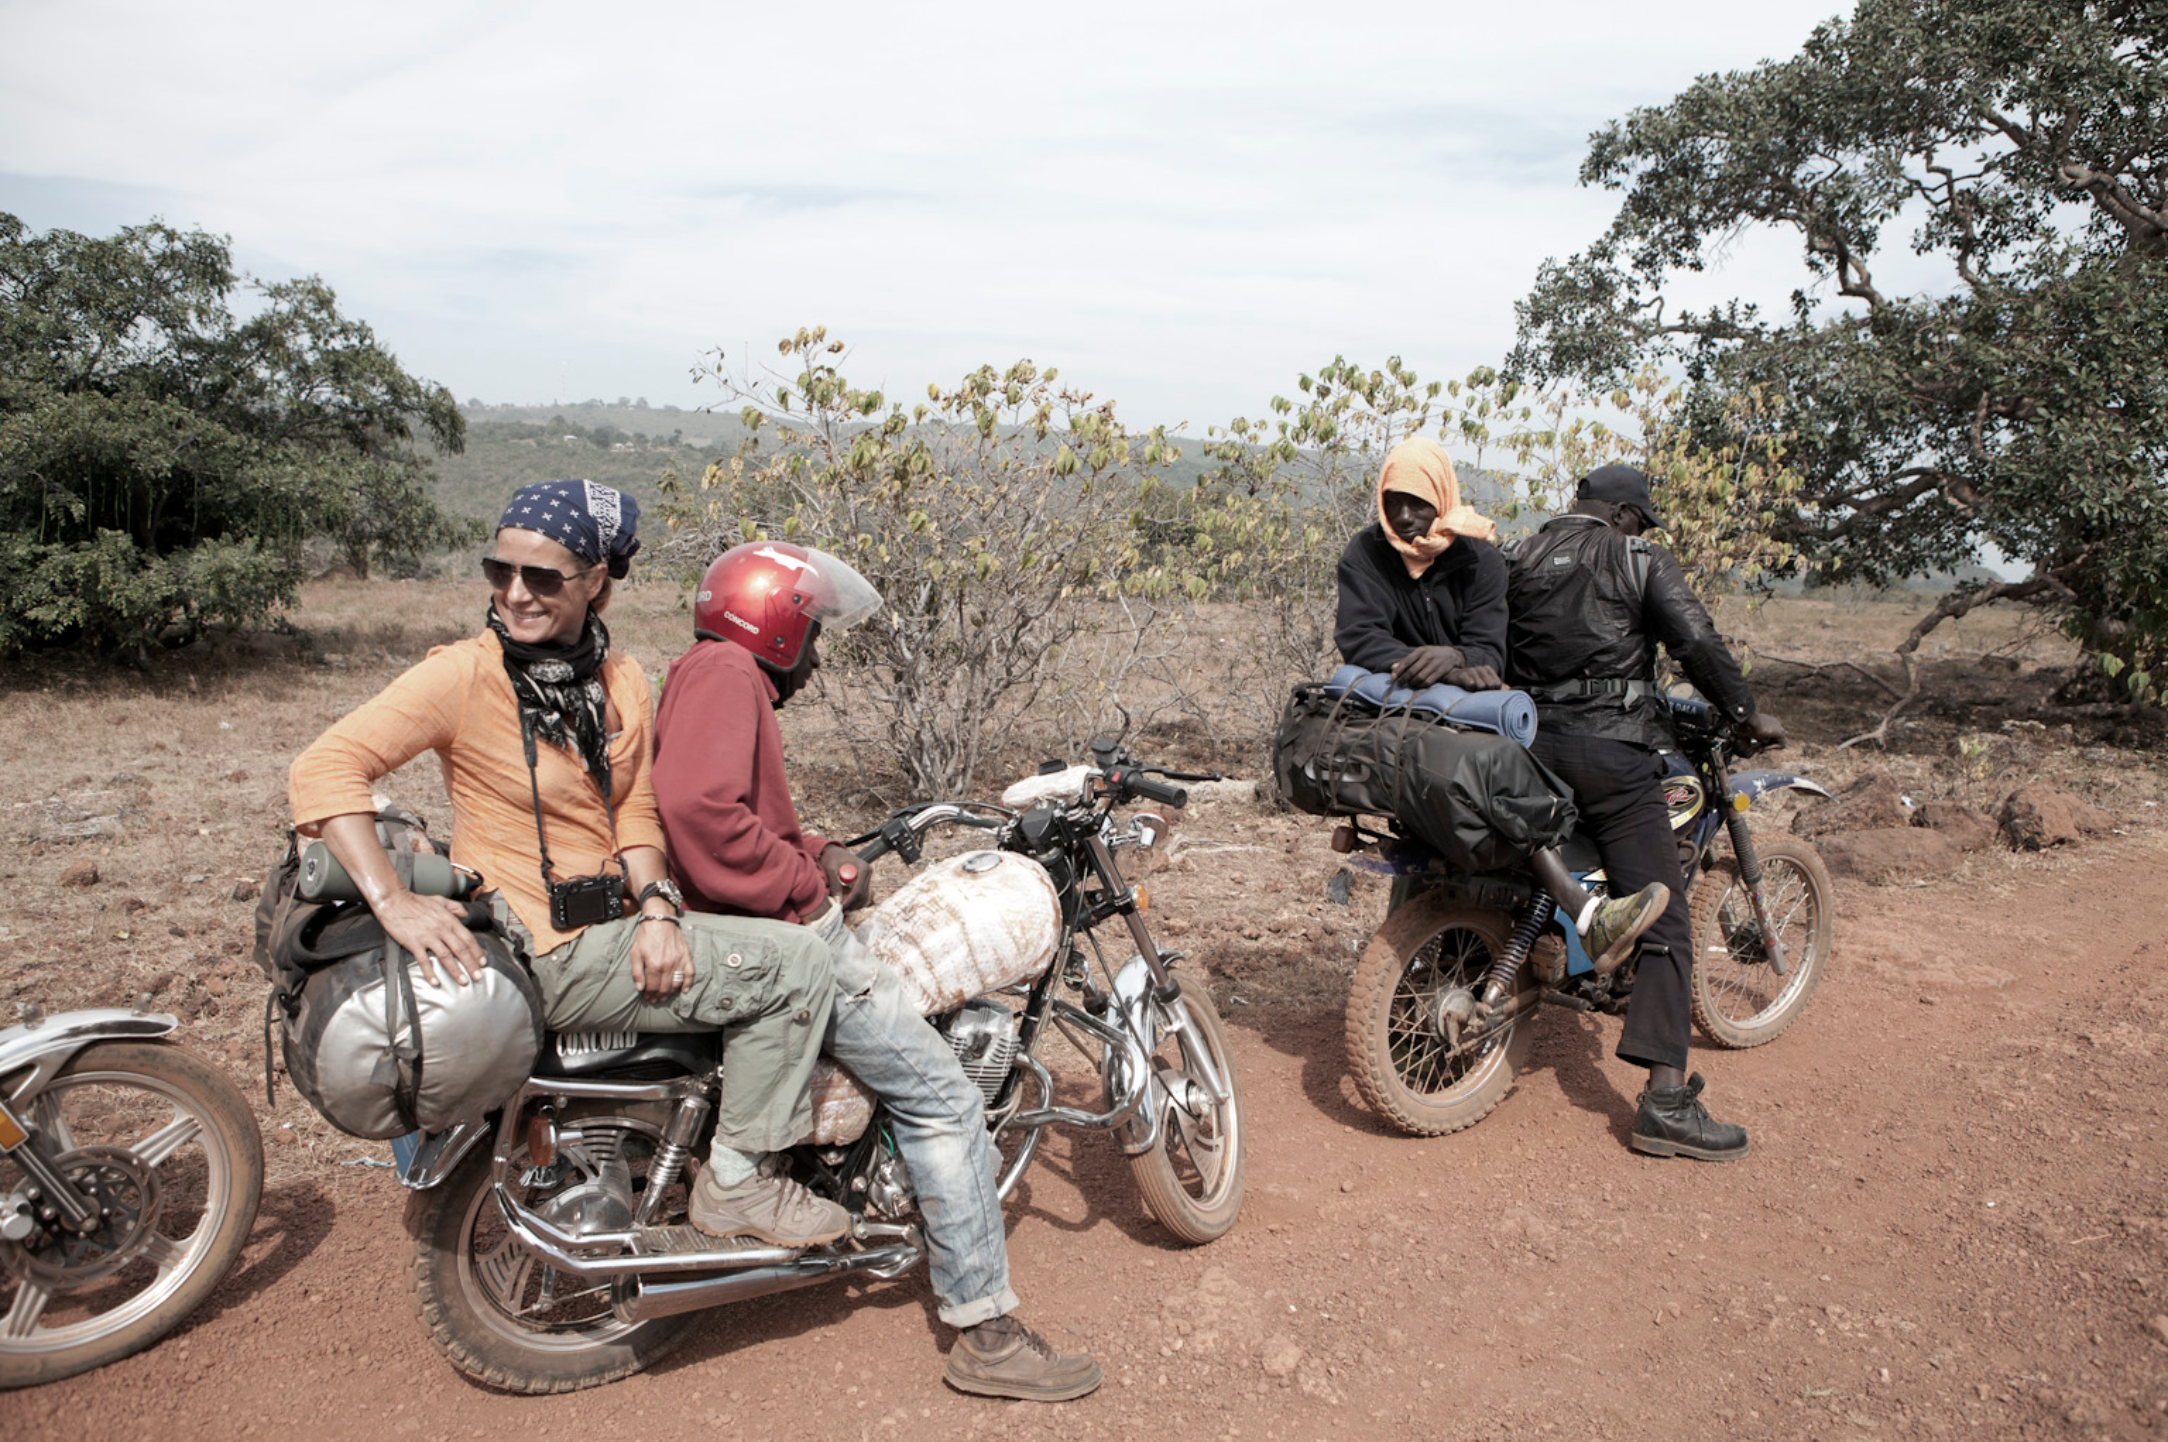 Helen & 'mototaxi' rider, Ebu, and River Gambia Expedition team member, Ebou with his rider – leaving Mali Ville, Guinea-Conakry © Jason Florio